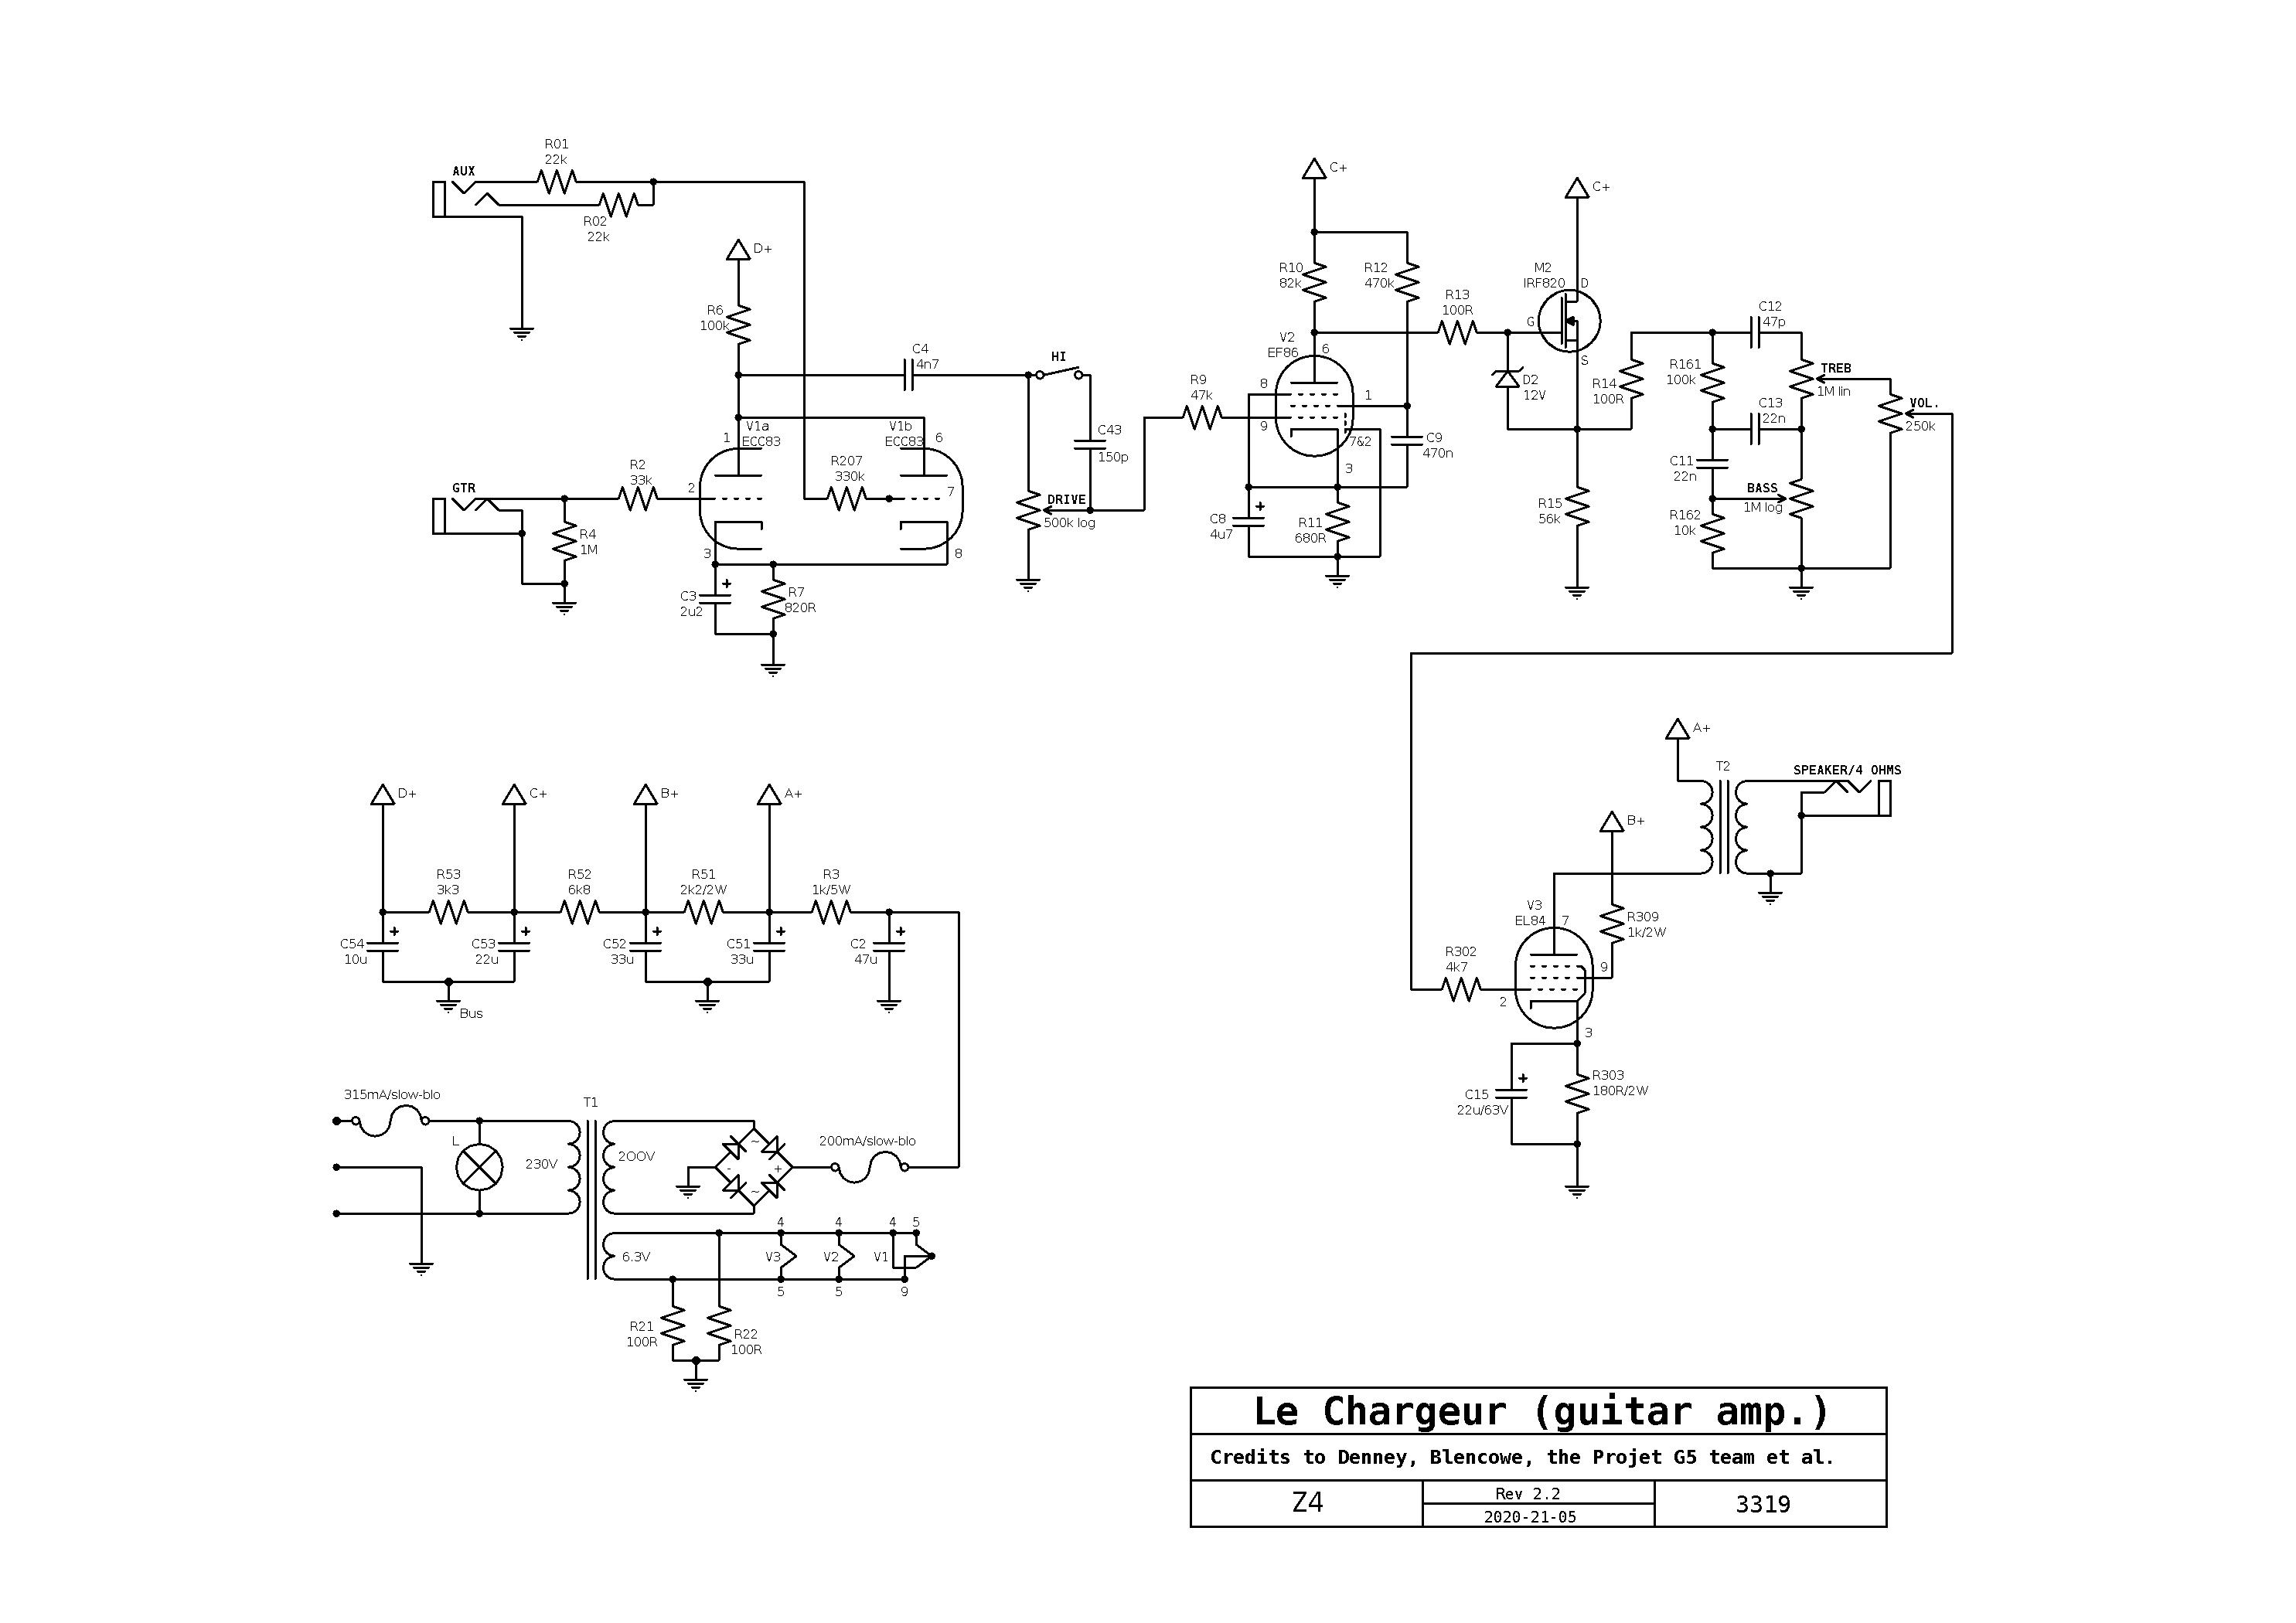 le Chargeur (yet another EF86 AC4 kind of amp) - The Amp Garage on fender pro 185 schematic, fender pro reverb schematic, fender champ schematic aa764, fender jaguar schematic, fender m80 schematic, fender footswitch schematic, 59 fender champ schematic, fender excelsior schematic, fender pro amp schematic,